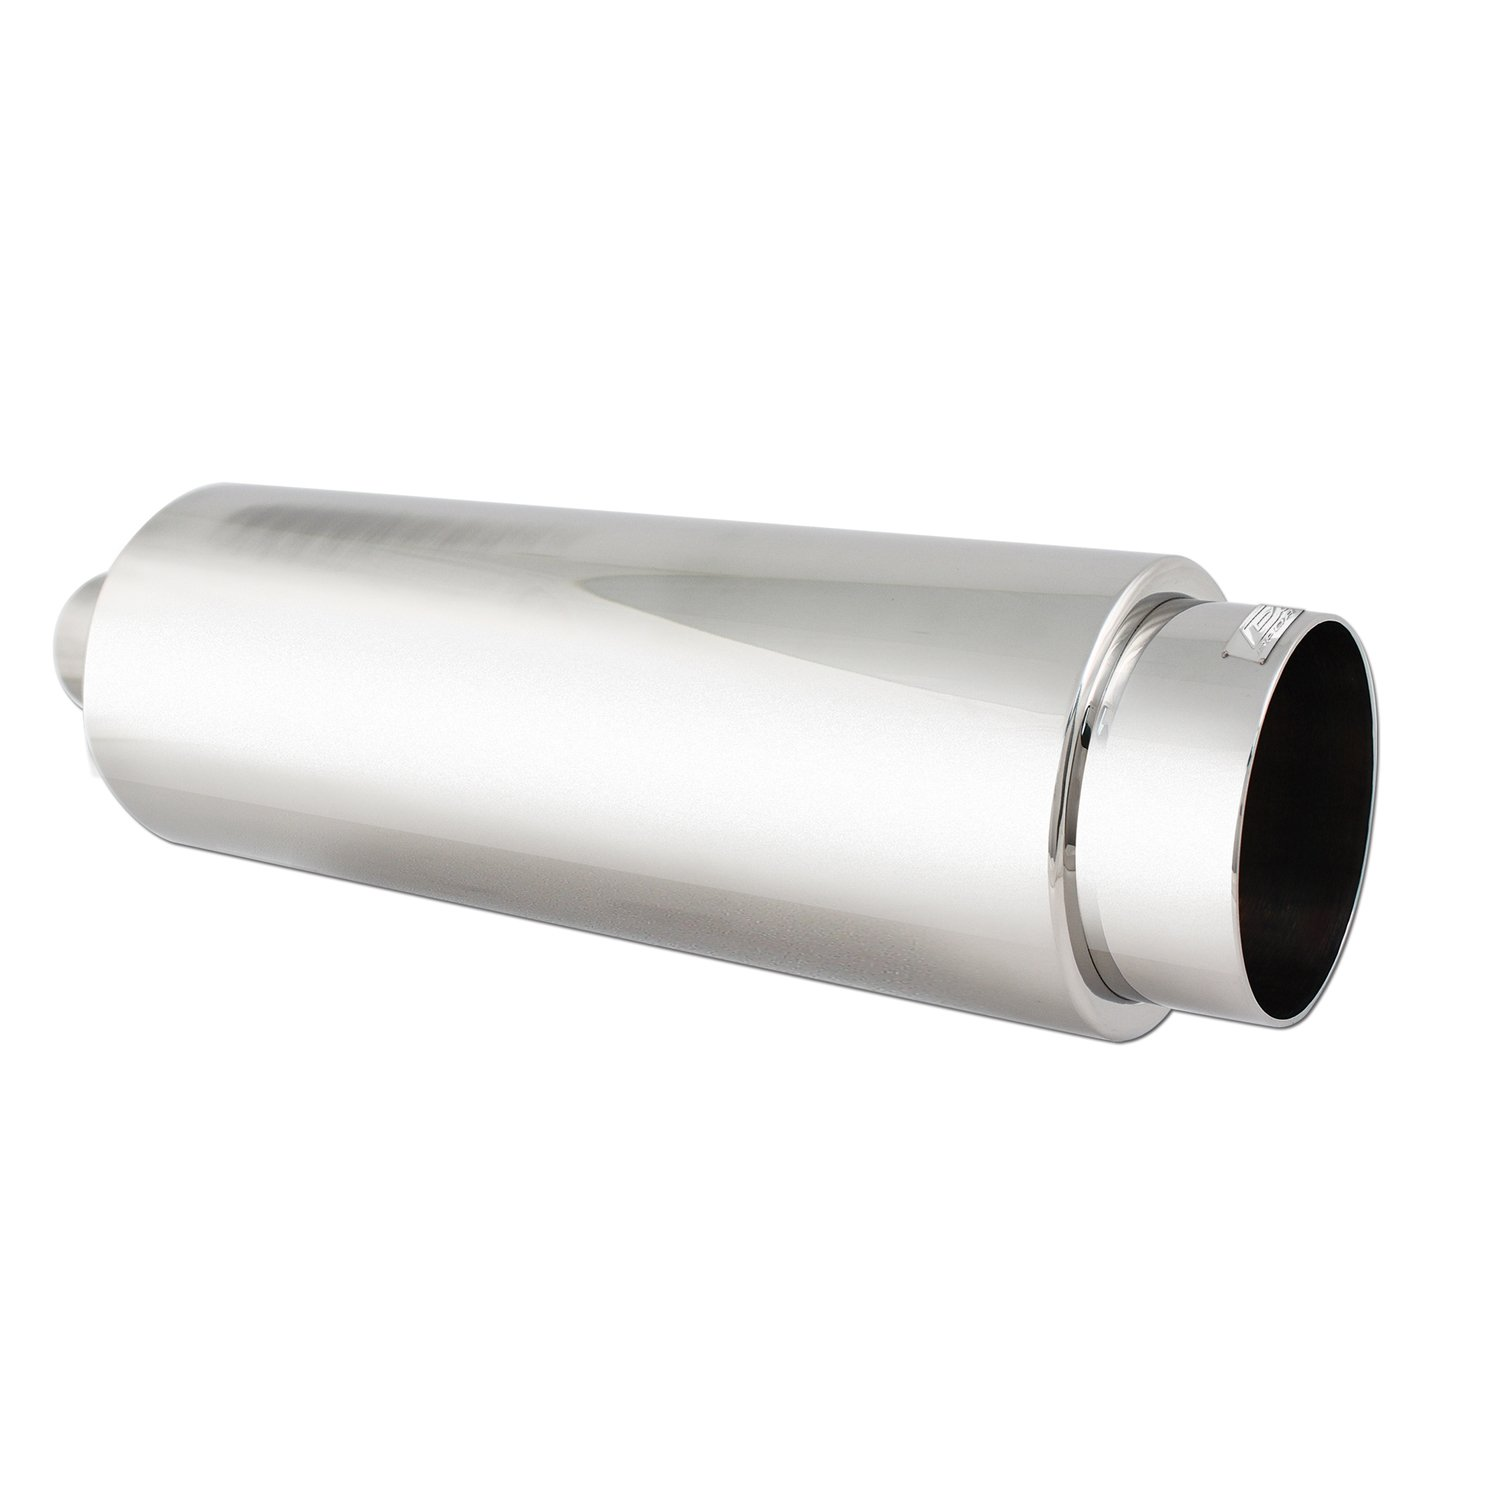 DC Sport EX-5012 Stainless Steel Round Muffler and Exhaust Tip DC Sports